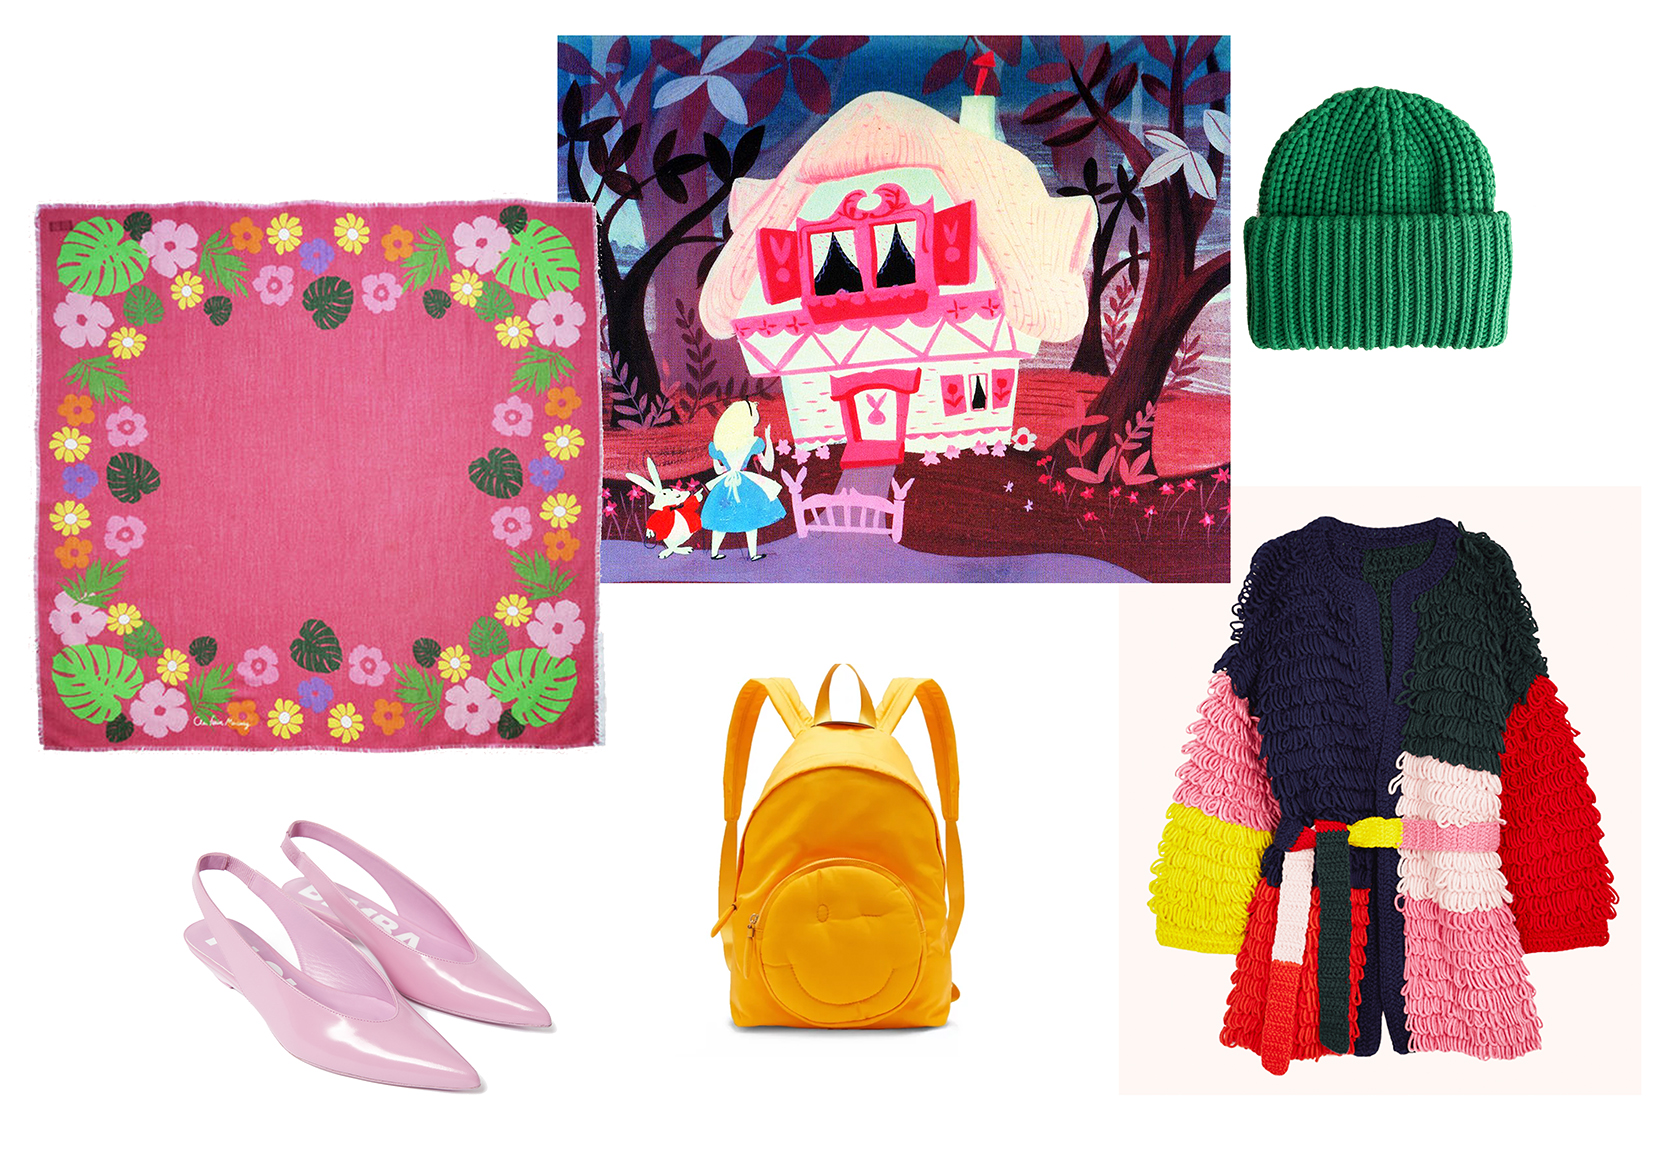 Pink Wool Scarf by Cléo Ferin Mercury ,  Shoes by Bimba Y Lola ,  Yellow Bagpack by Anya Hindmarch ,  Beanie Hat by &Other Stories ,  Cardigan by Mira Mikati .